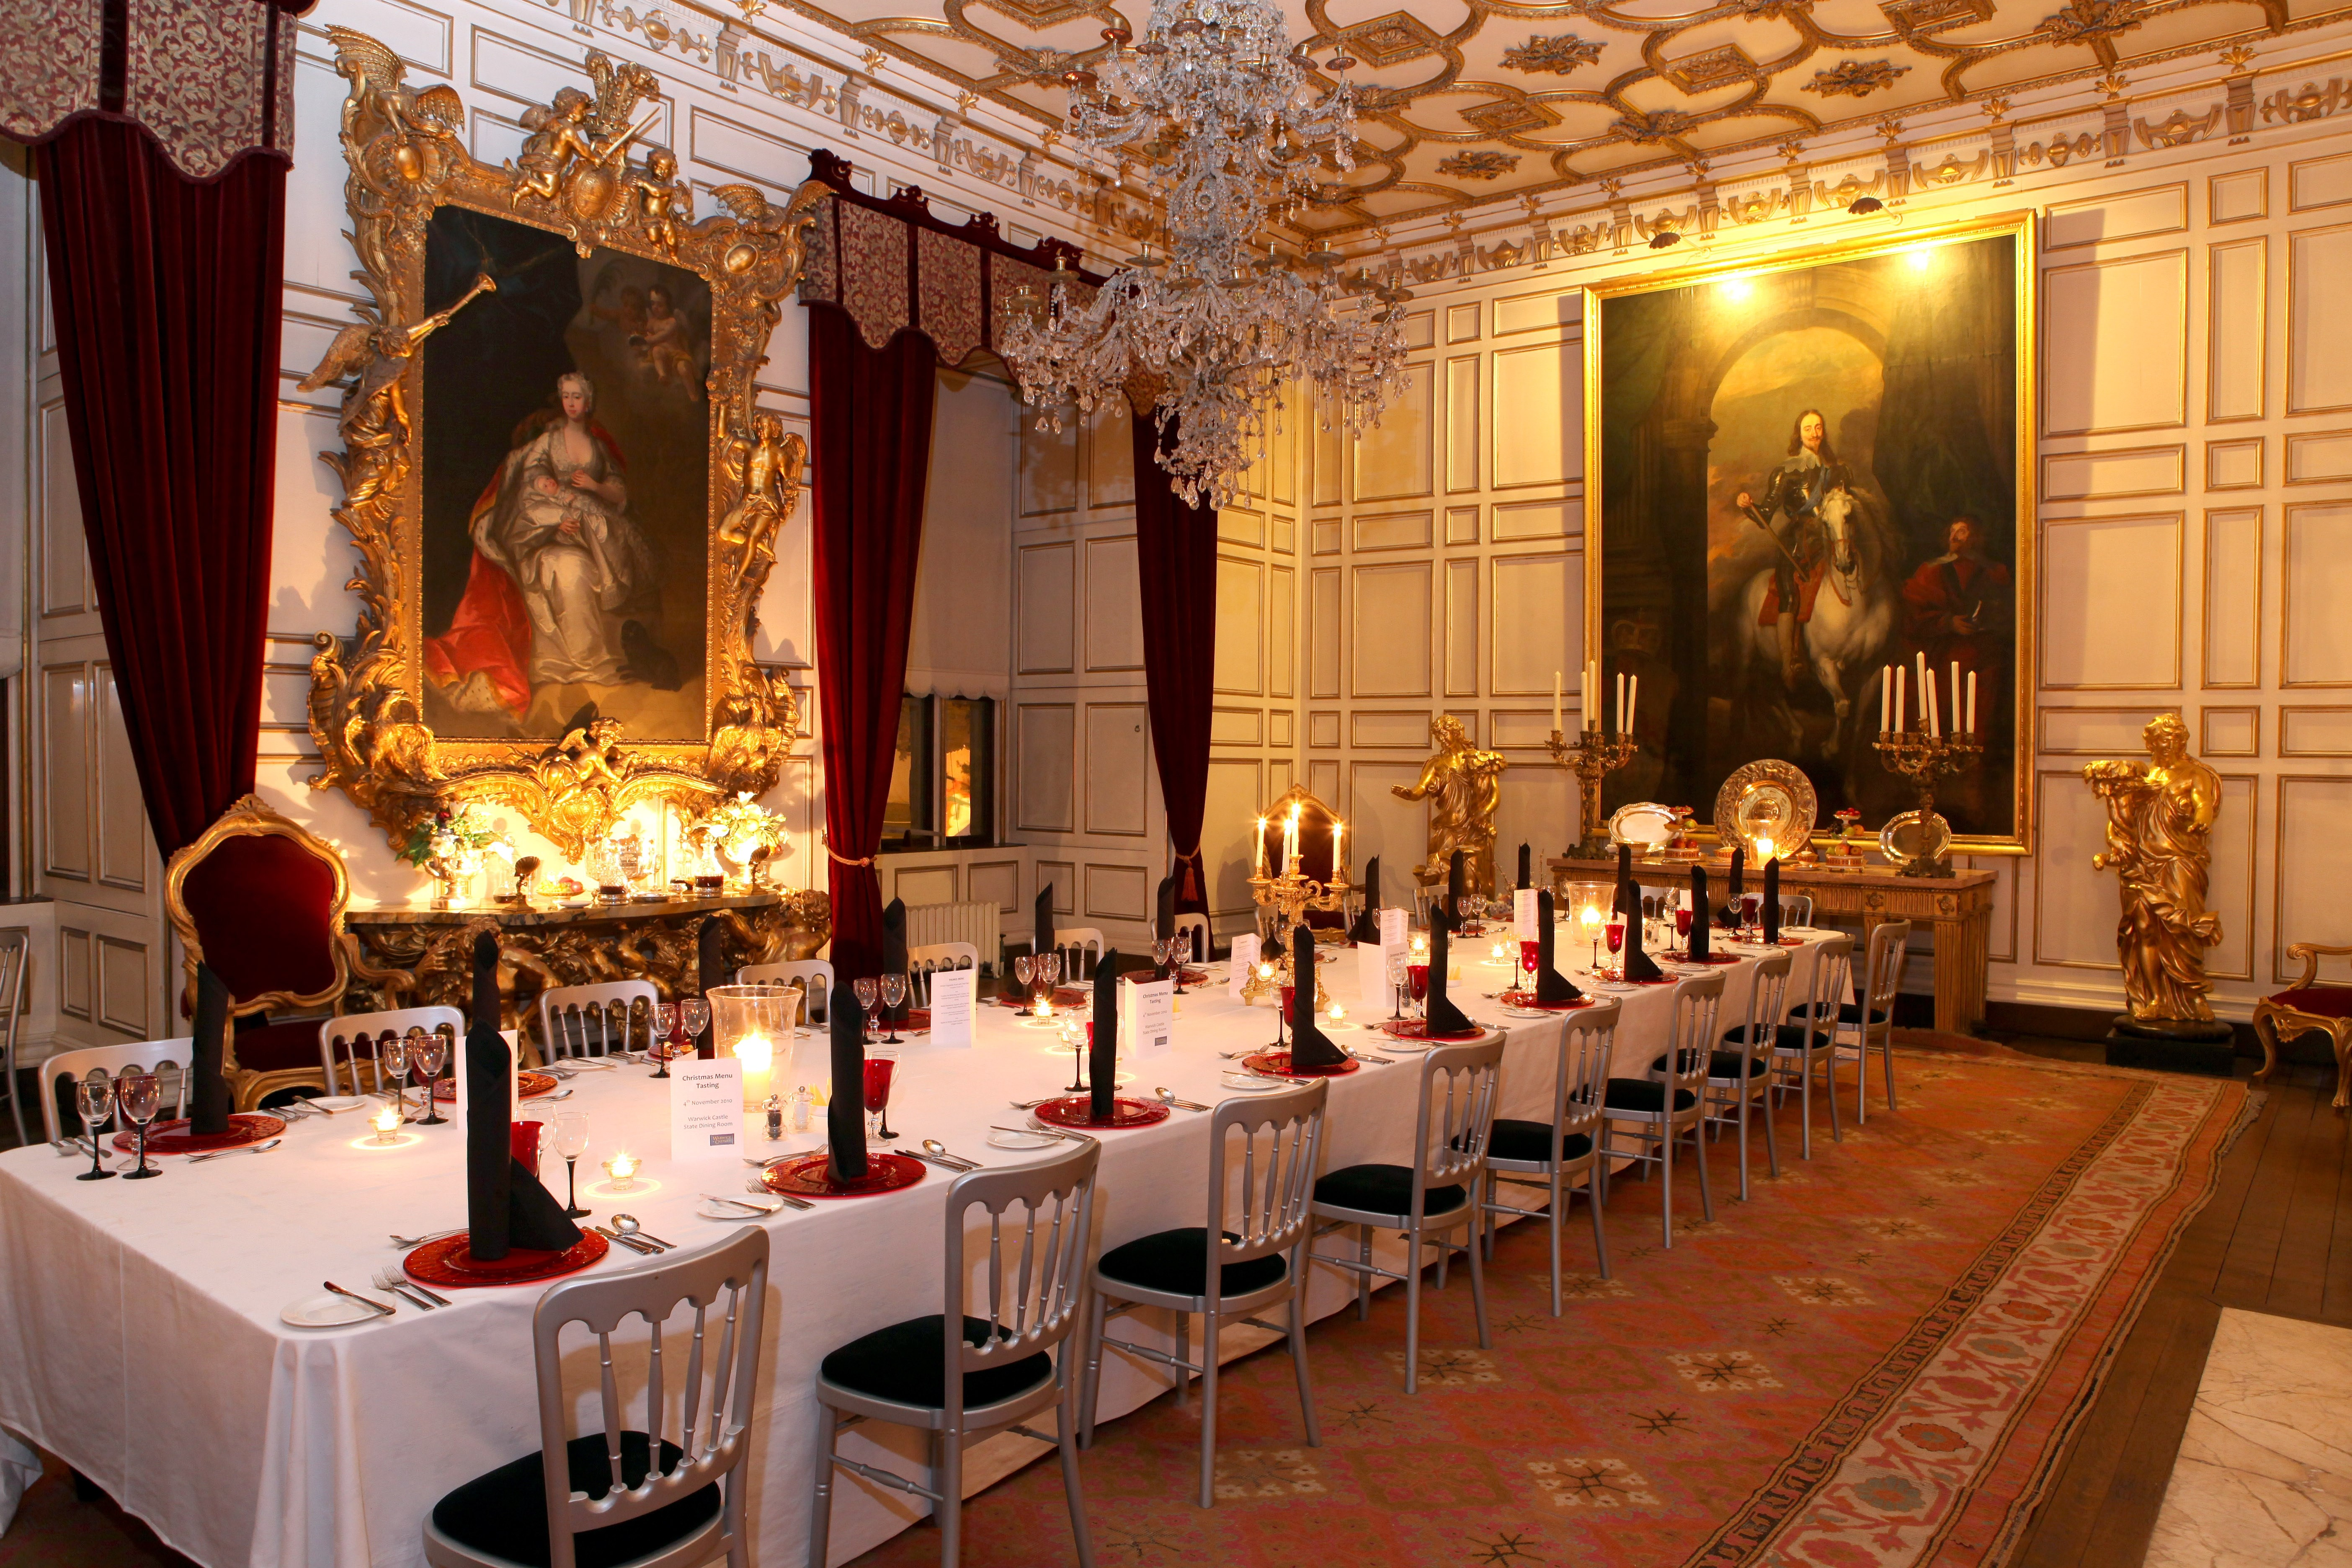 State Dining Room & Axminster